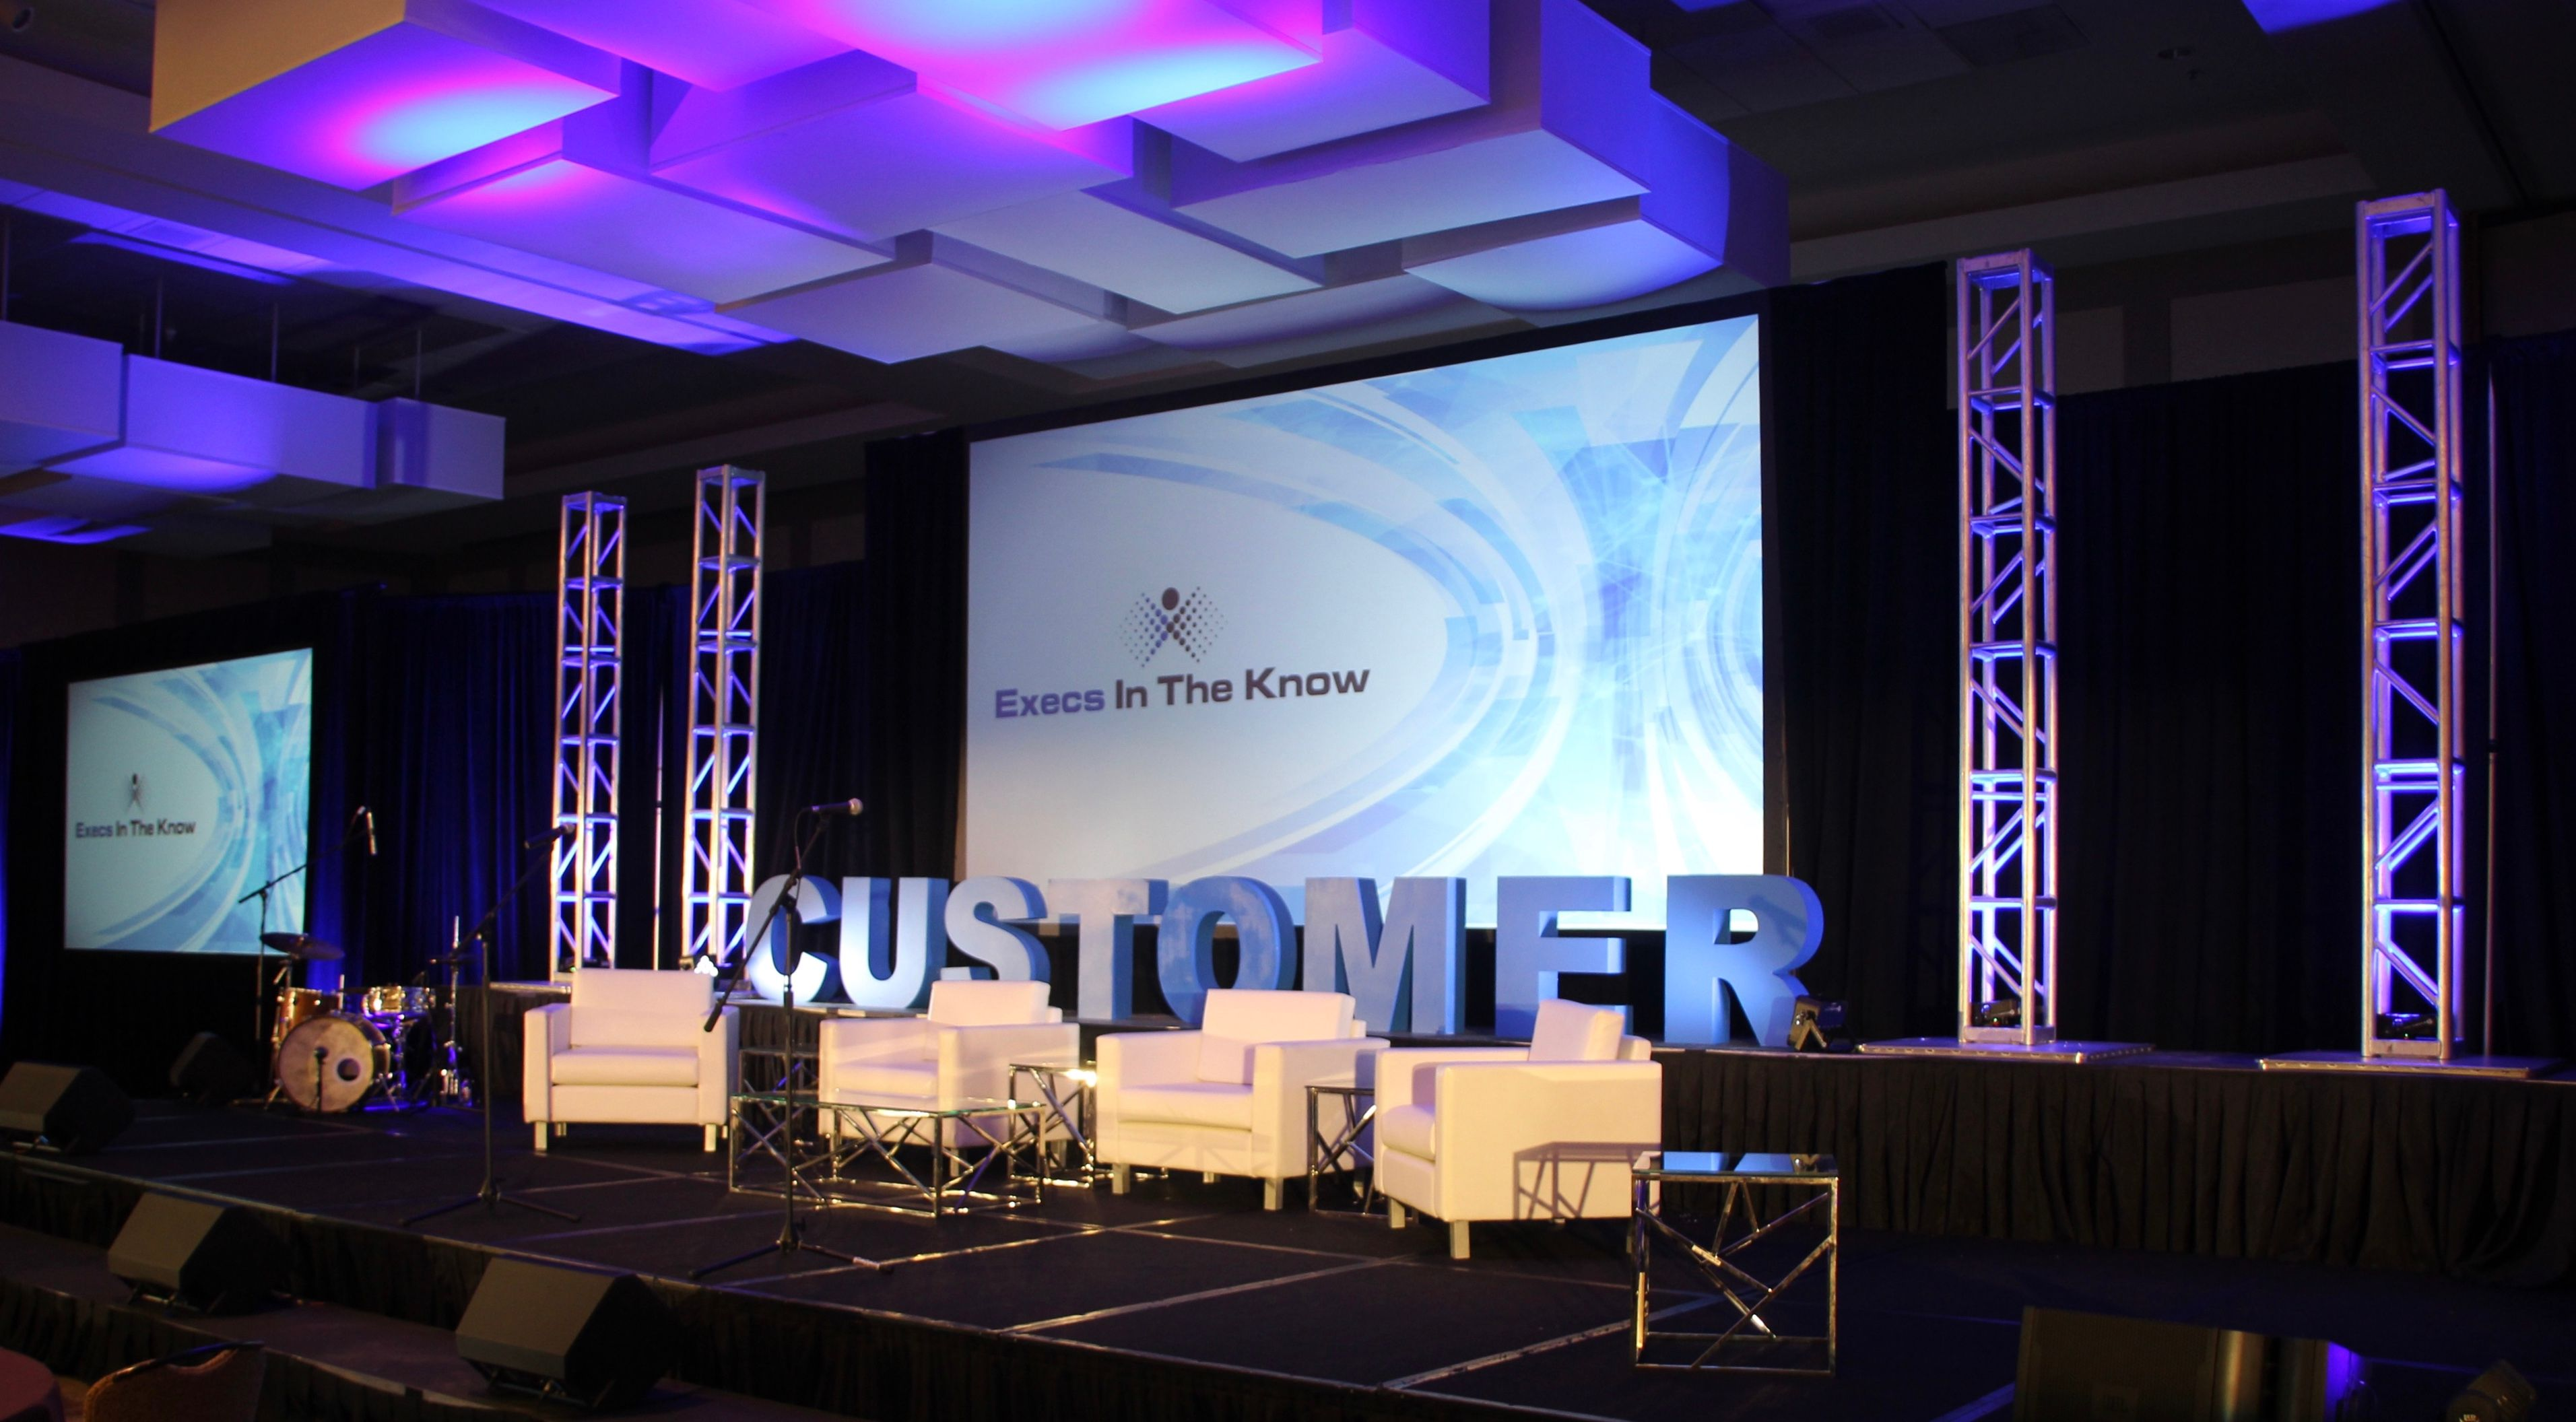 Execs In The Know Conference Stage Design